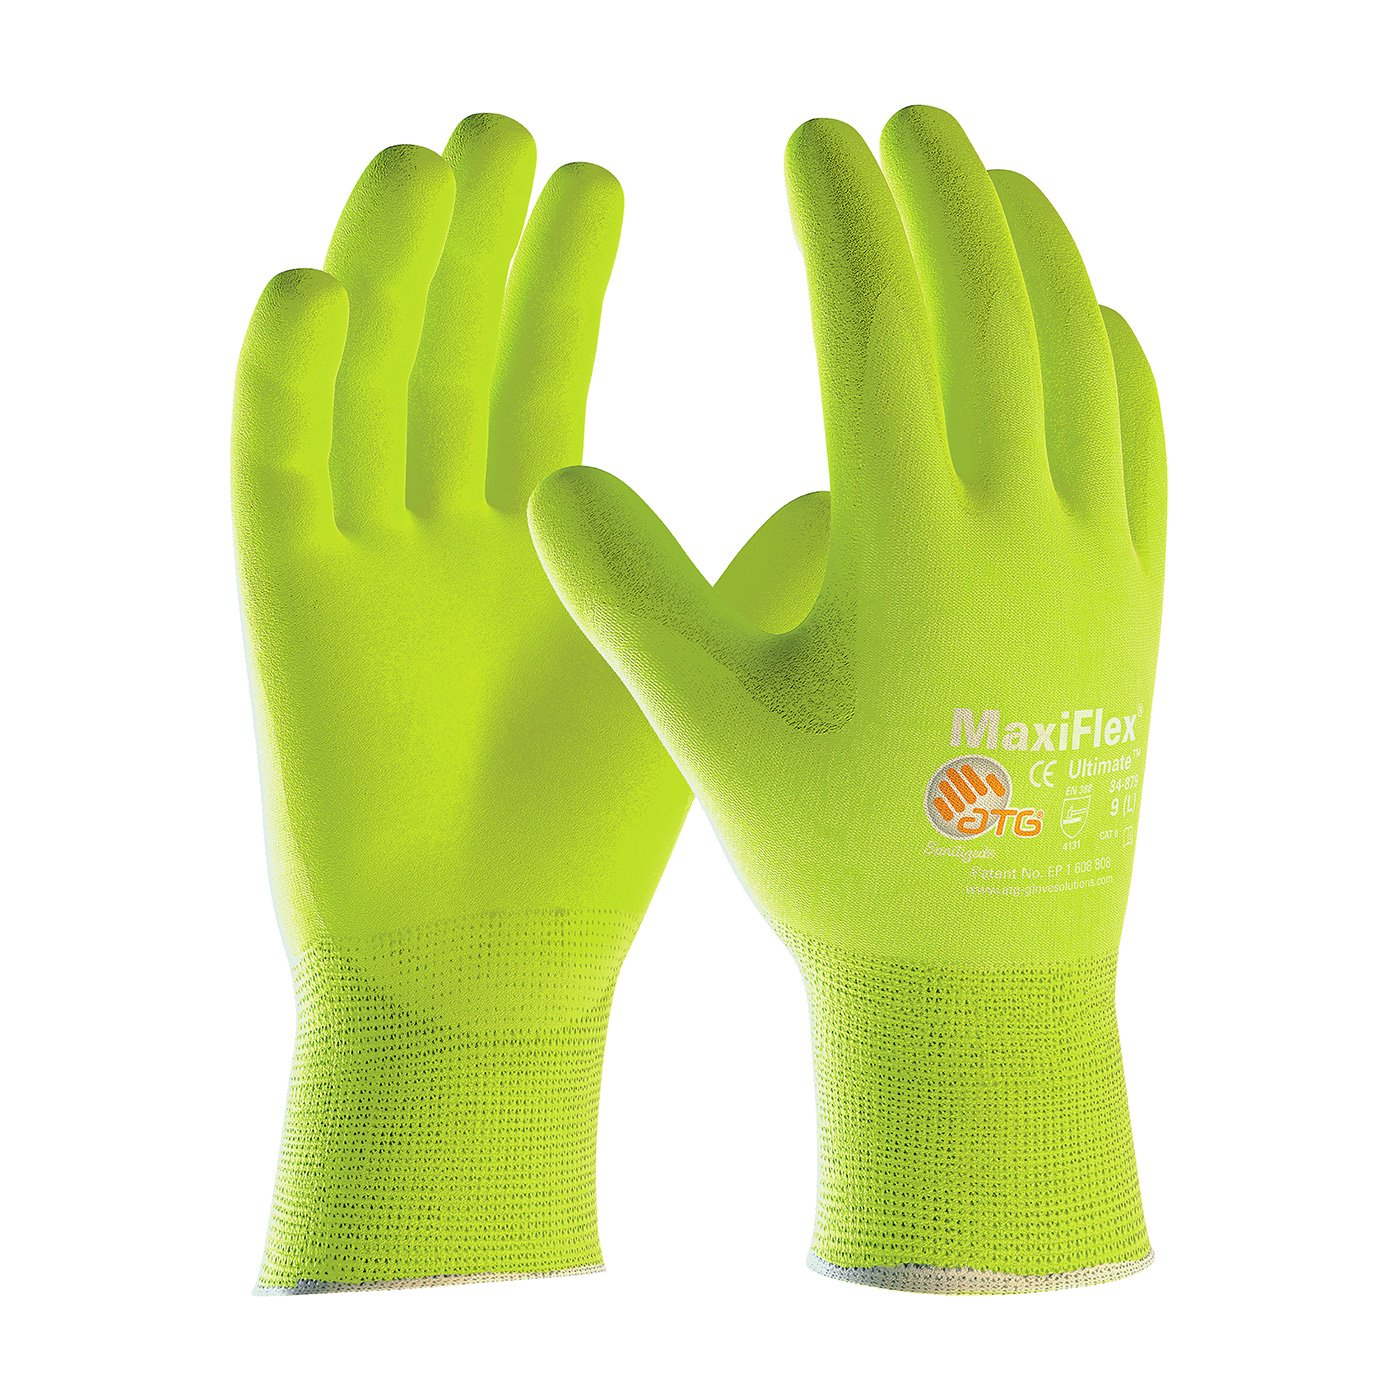 Hi-Vis Seamless Knit Nylon/Lycra Glove with Nitrile Coated MicroFoam Grip on Palm & Fingers, Size X-large 12 Pair